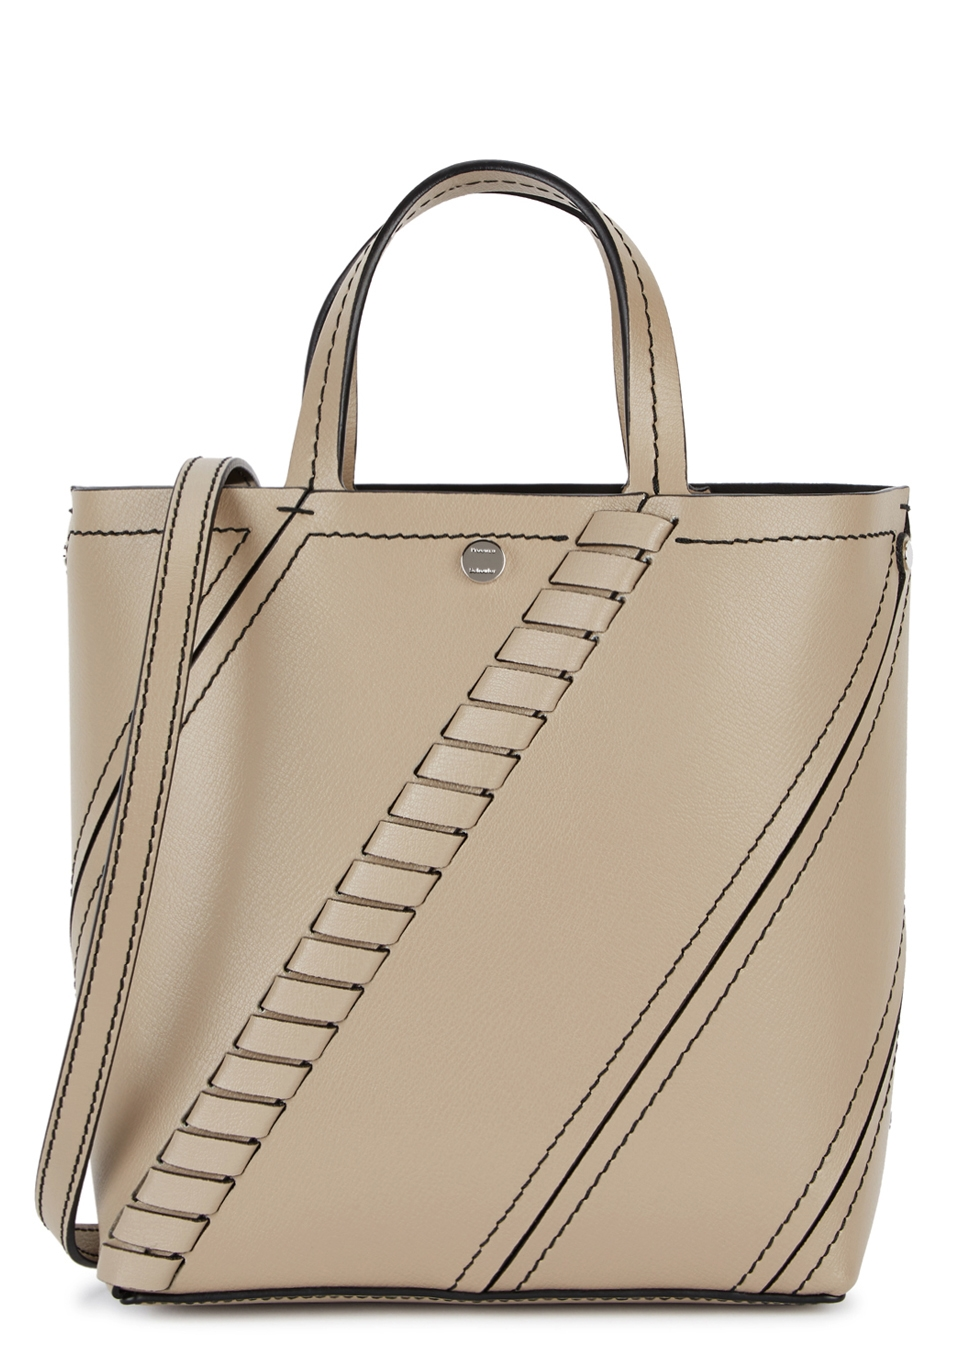 HEX SMALL LIGHT TAUPE LEATHER TOTE